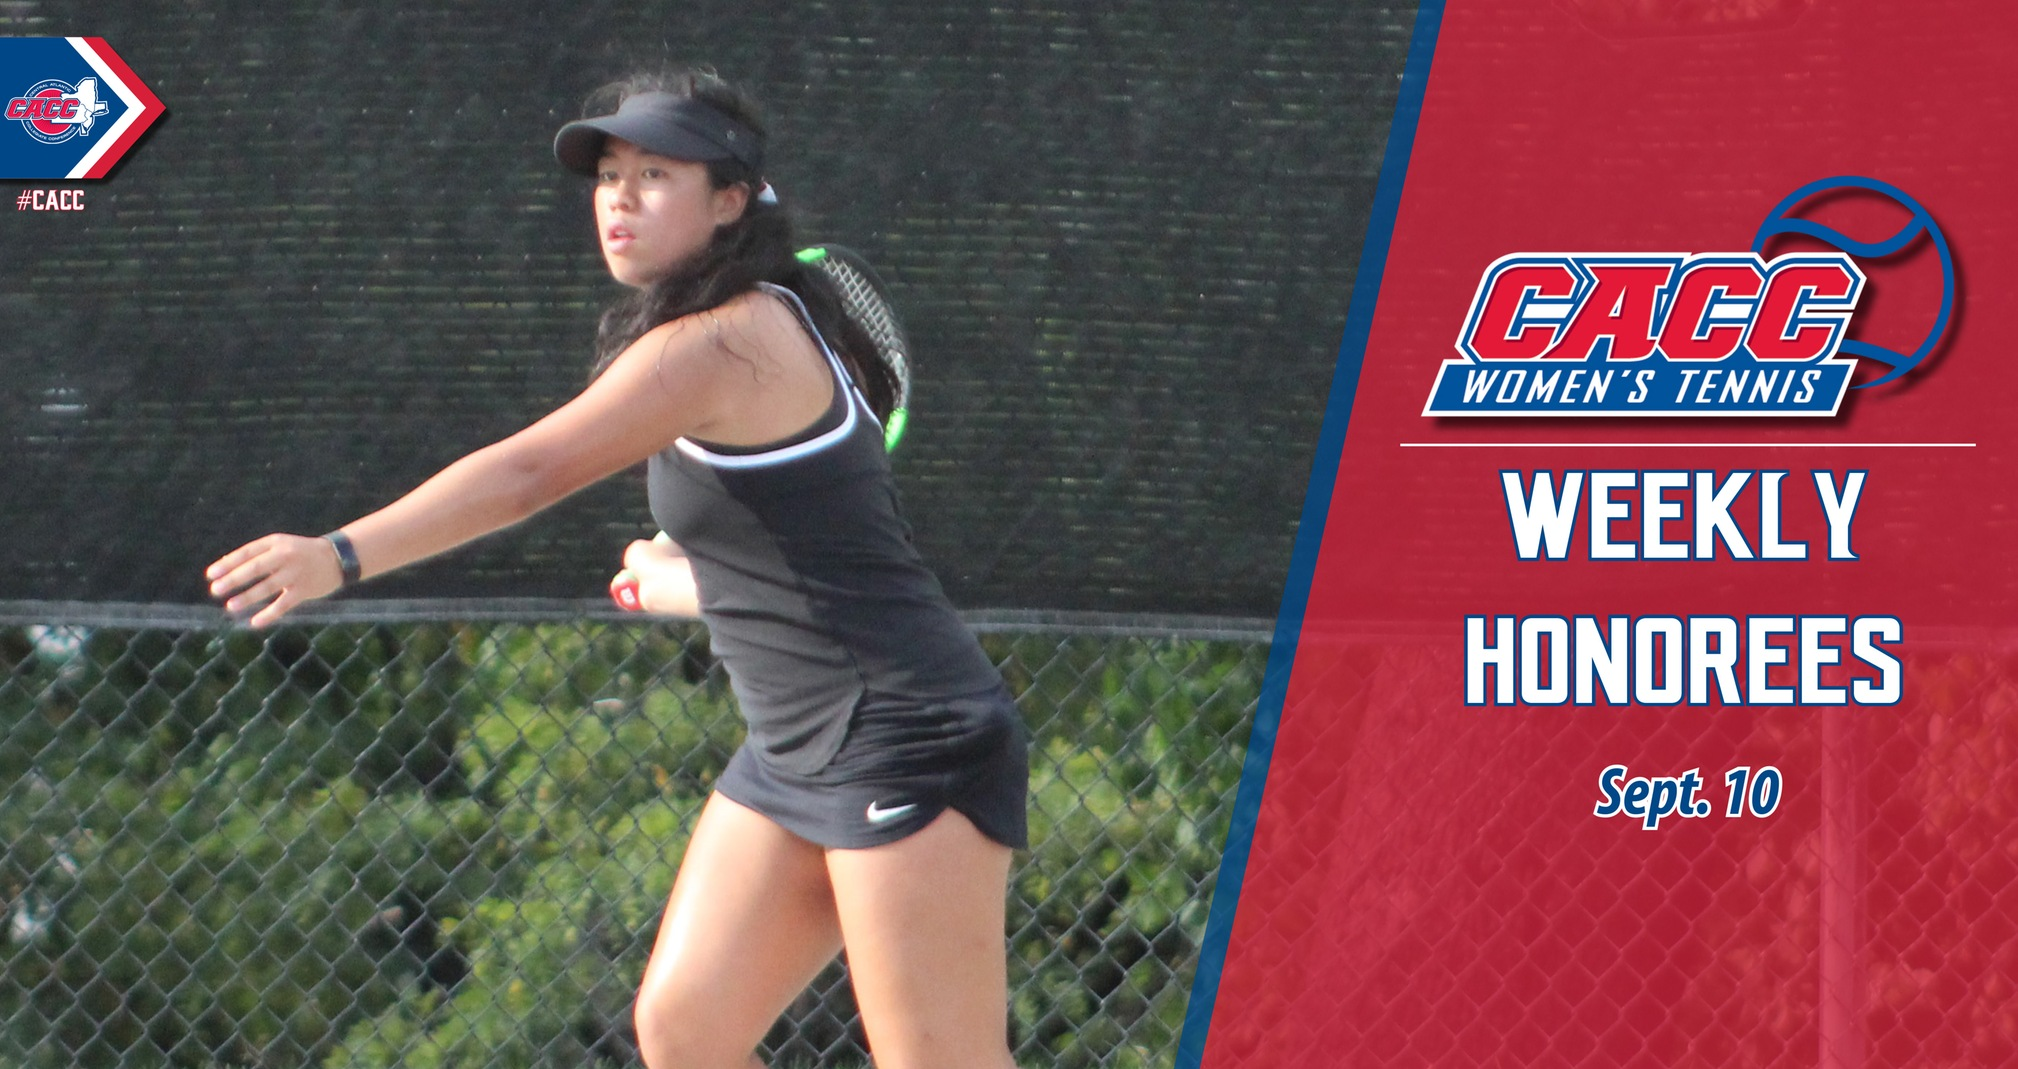 CACC Women's Tennis Weekly Honorees (Sept. 10)